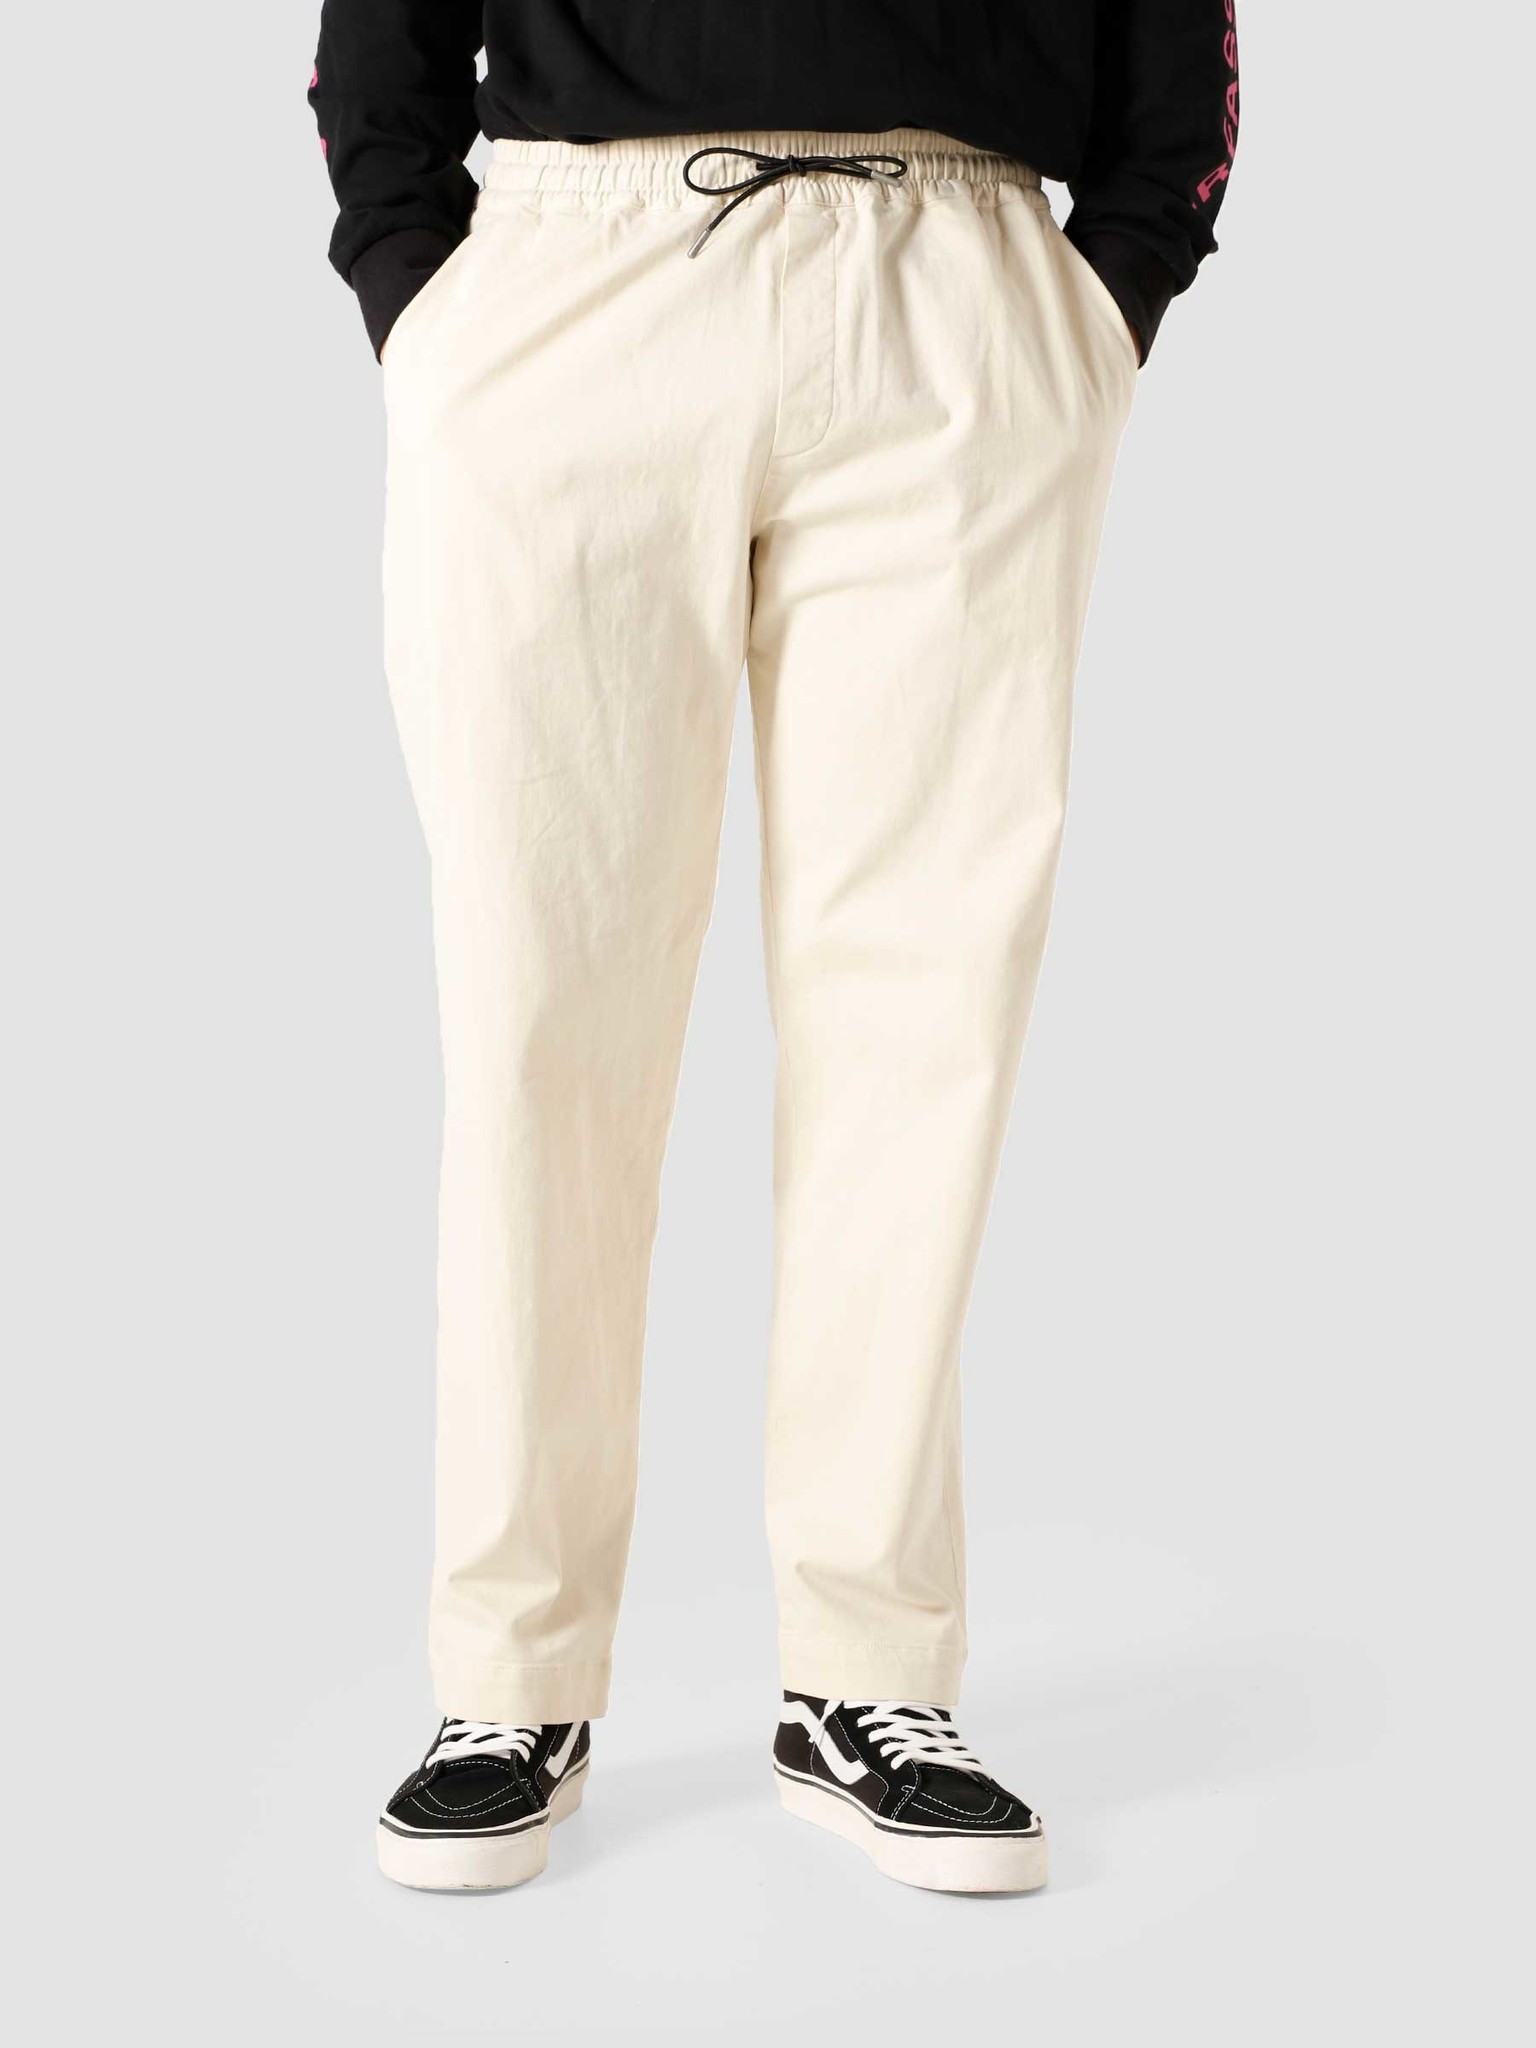 New Amsterdam Surf Association New Amsterdam Surf association Work Trouser Bone 2021093